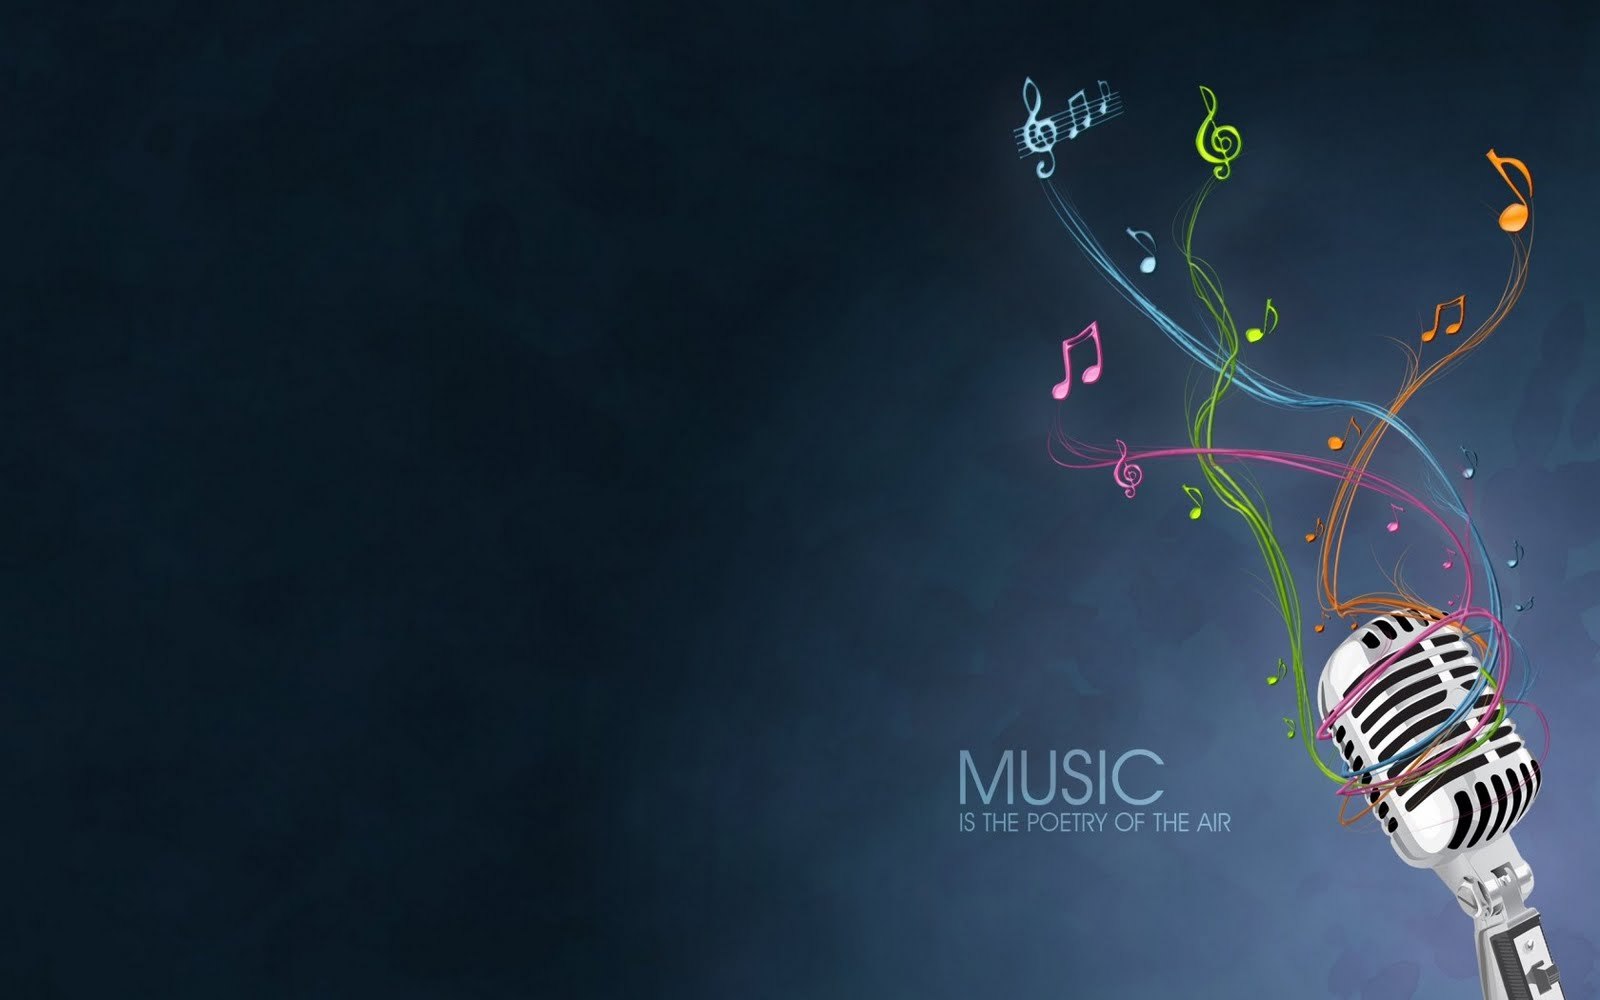 Amazing Music Wallpapers: Deroucicho: 35 Awesome Music Wallpapers